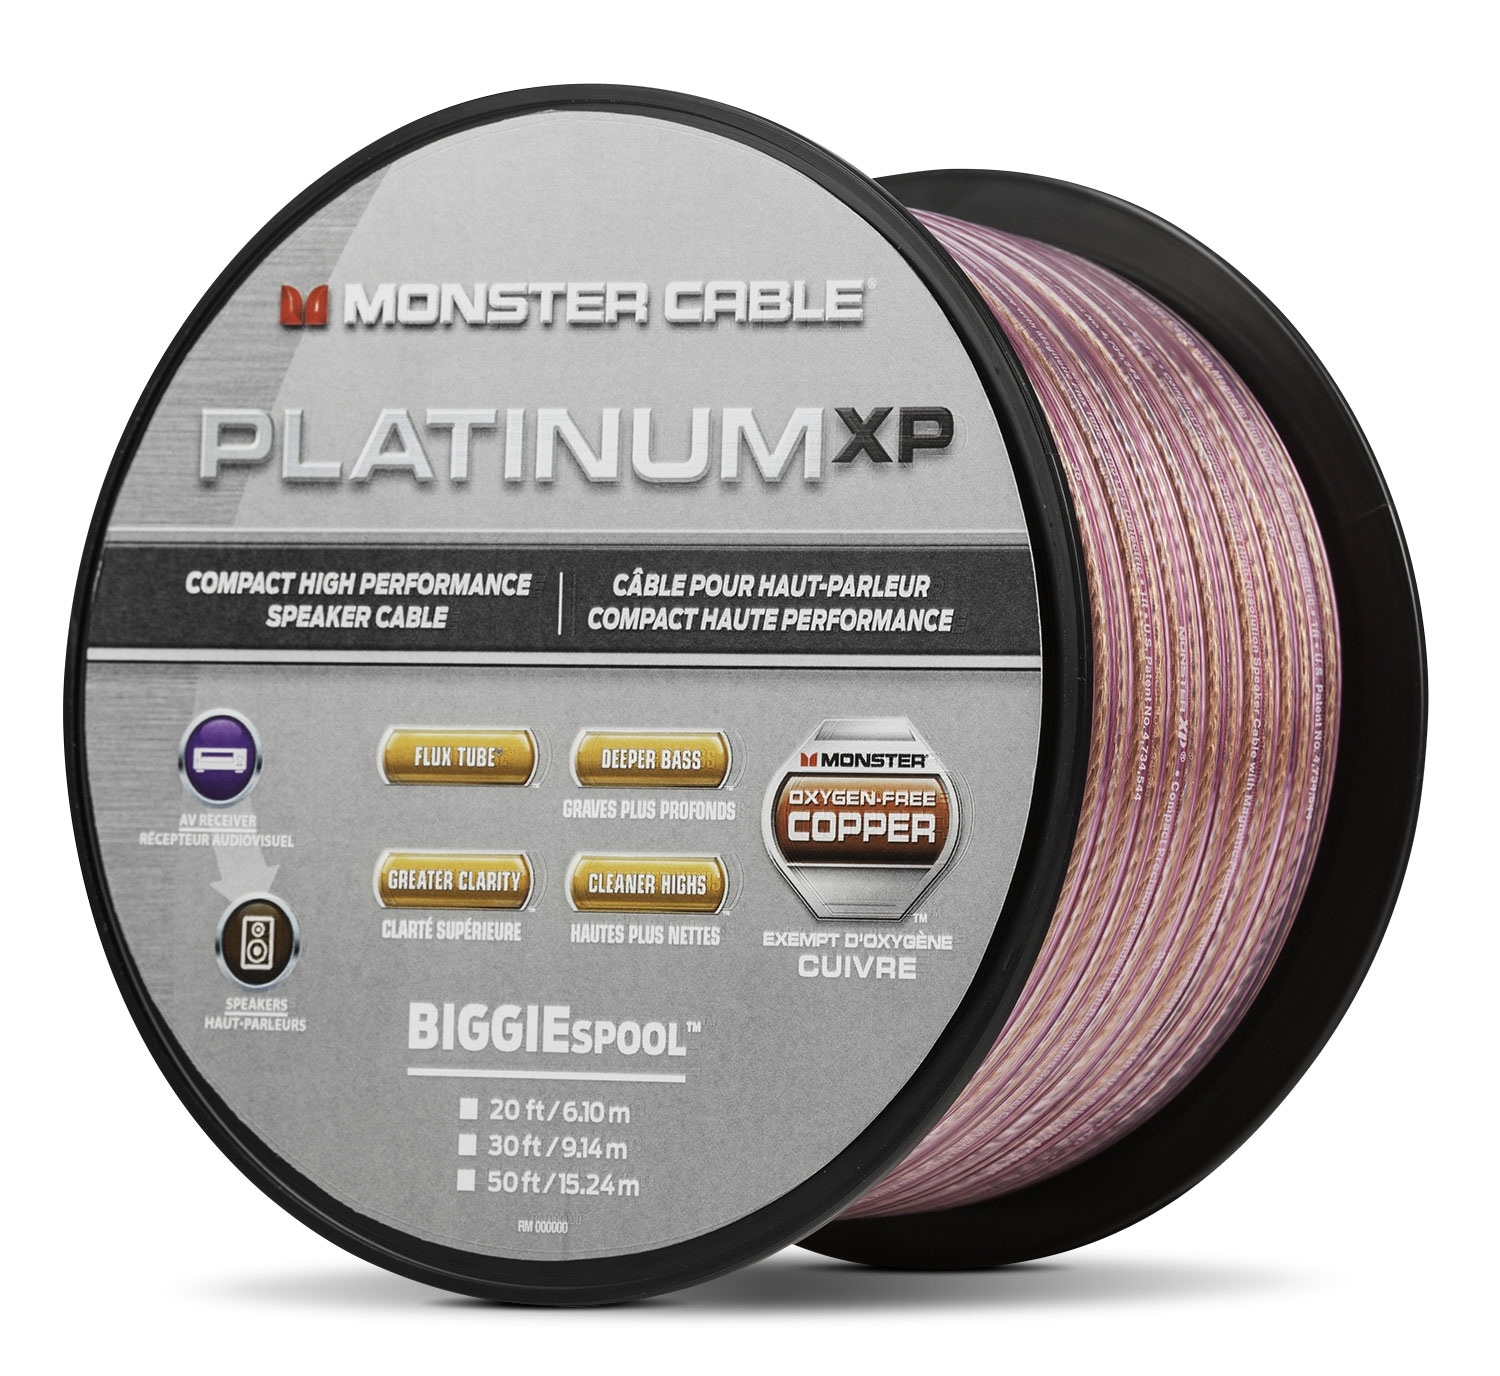 Sound Systems - Monster® Platinum XP® Compact Speaker Cable MKIII - 15.24 m